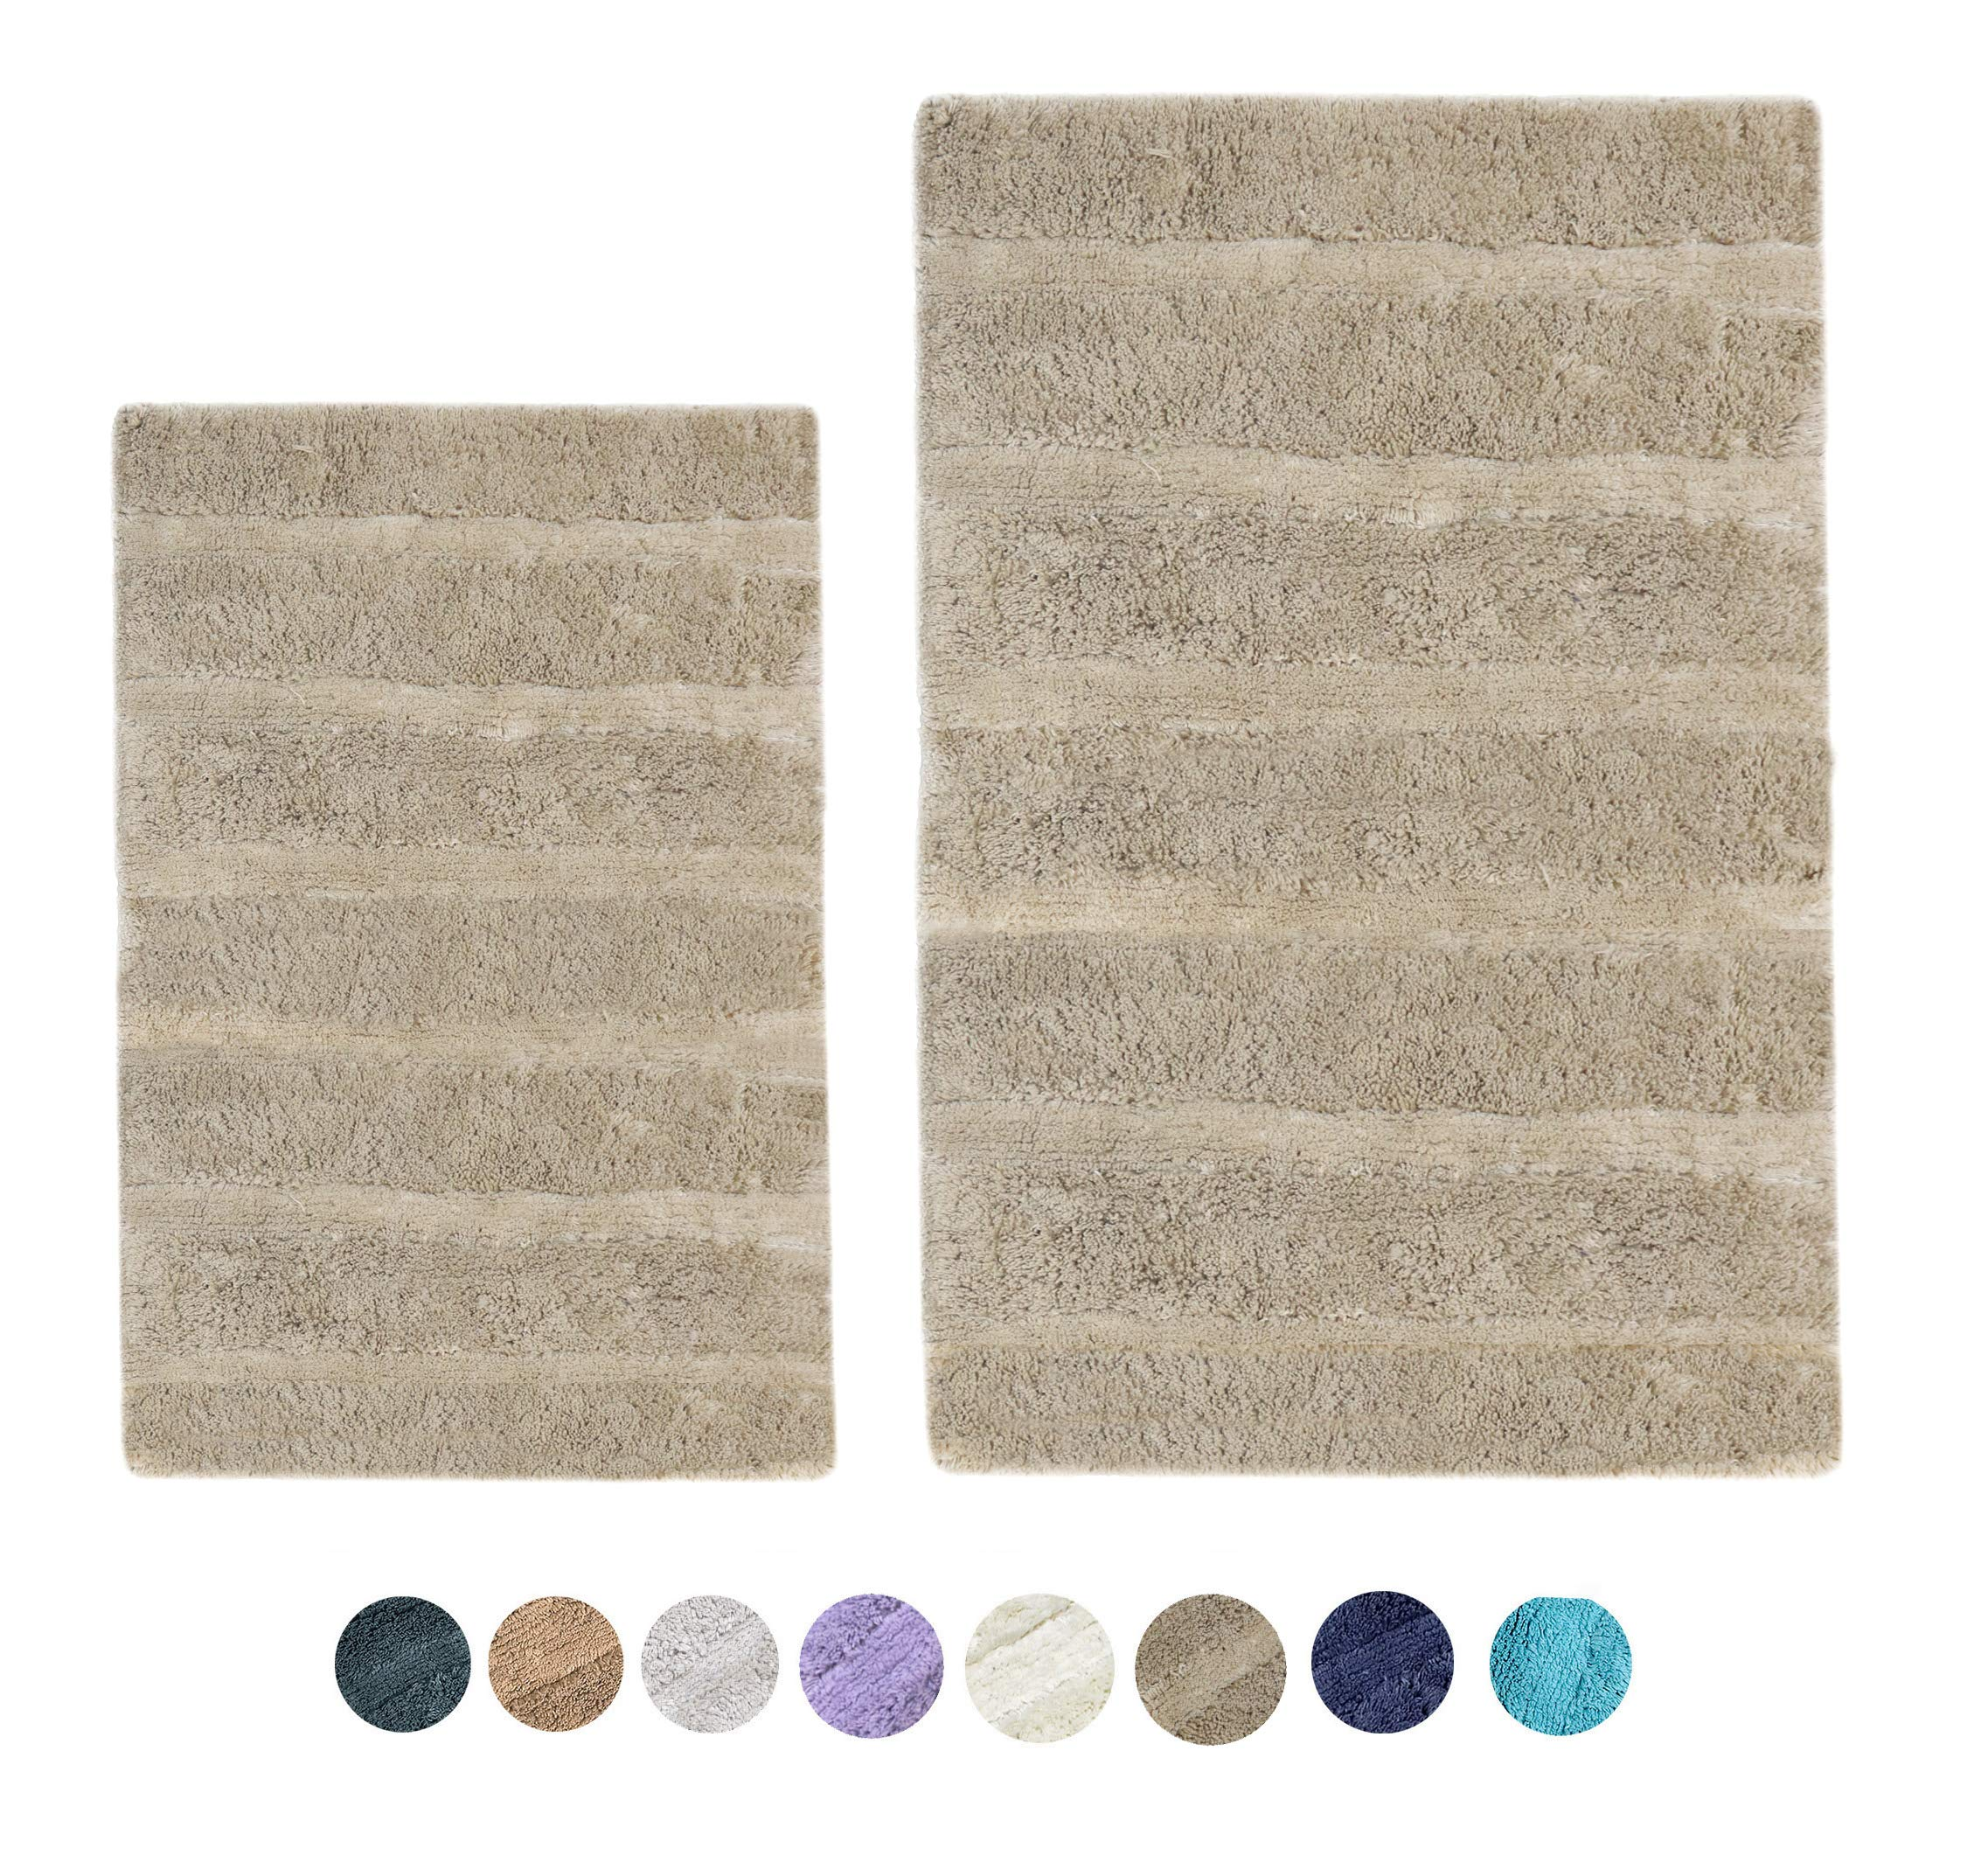 """Woven St Tufted Luxury Cotton 2 Piece Bath Rugs Set for Spa Vanity Shower Super Soft Machine Washable for Bathroom/Kitchen Water Absorbent Anti-Skid Bedroom Area Rugs (17"""" x 24"""" + 21"""" x 34"""")- Taupe"""